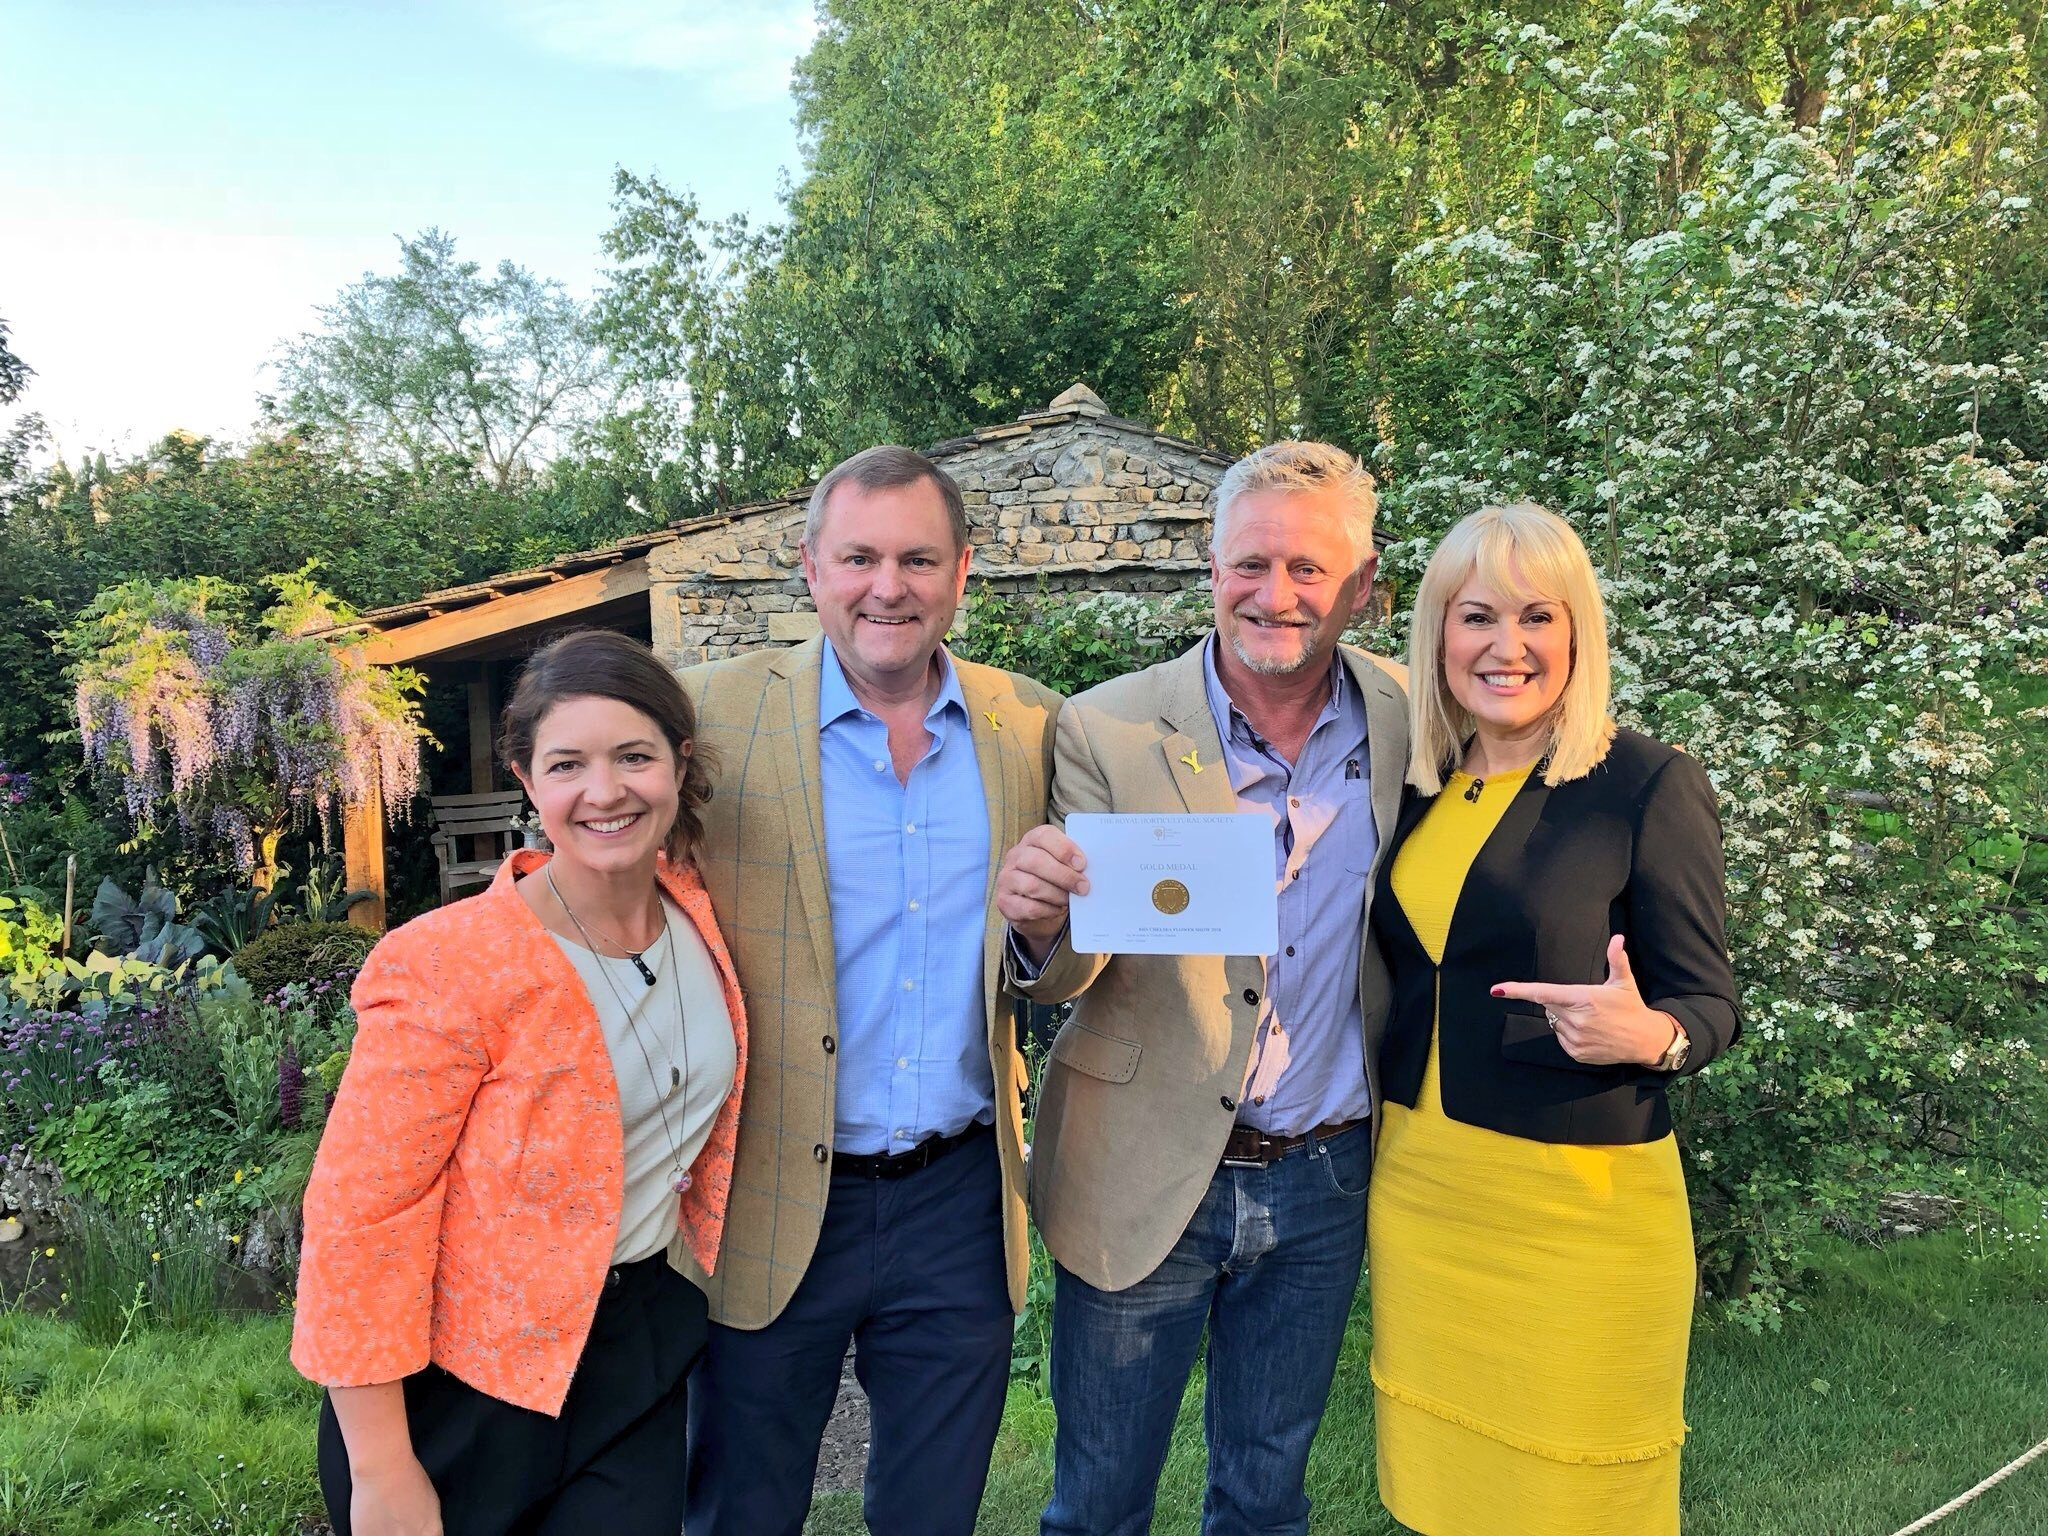 Katherine Potsides, Show Manager RHS Chelsea Flower Show, Sir Gary Verity, Chief Executive Welcome to Yorkshire, Garden Designer Mark Gregory from Landform Consultants, Nicky Chapman